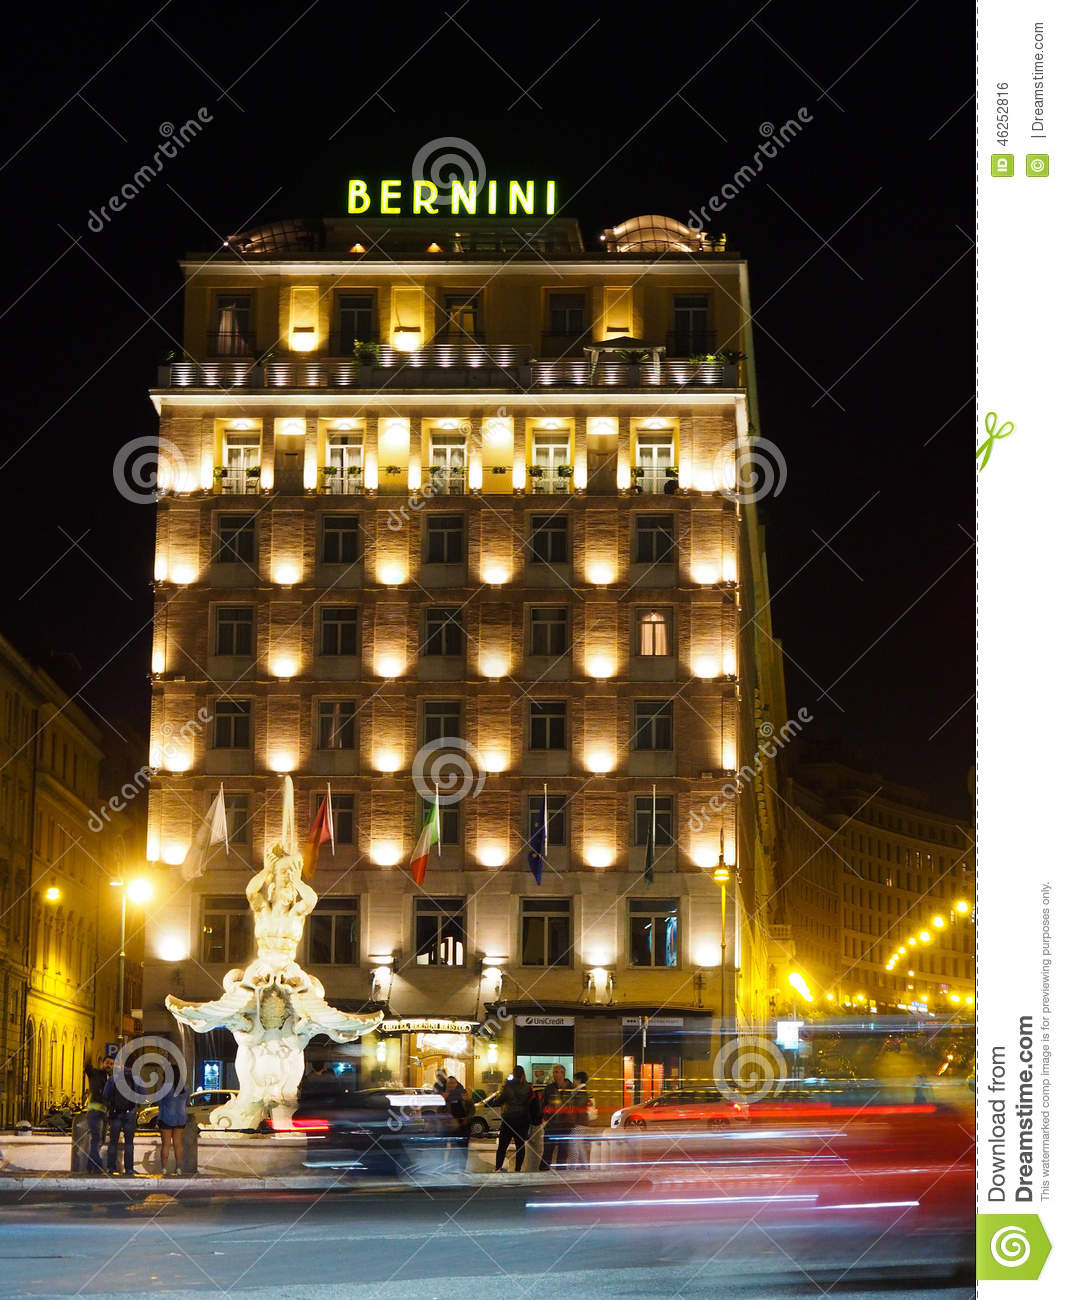 Albergo Bernini Italy Rome Hotel Bernini At Night From Across The Street